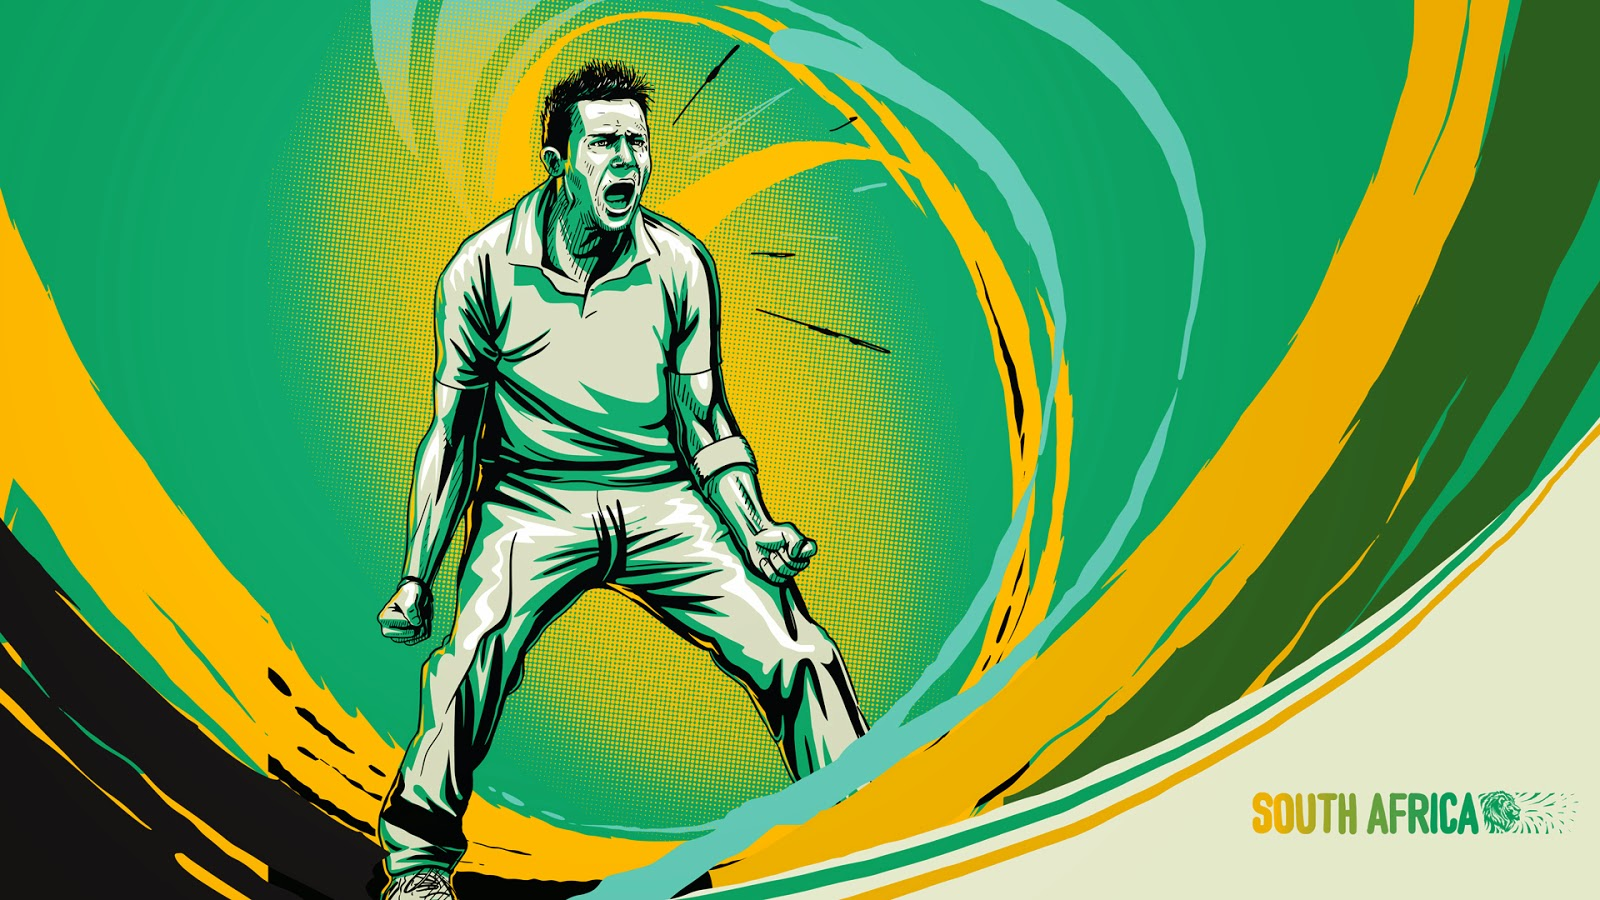 Graeme Smith South African cricketer illustration sketch